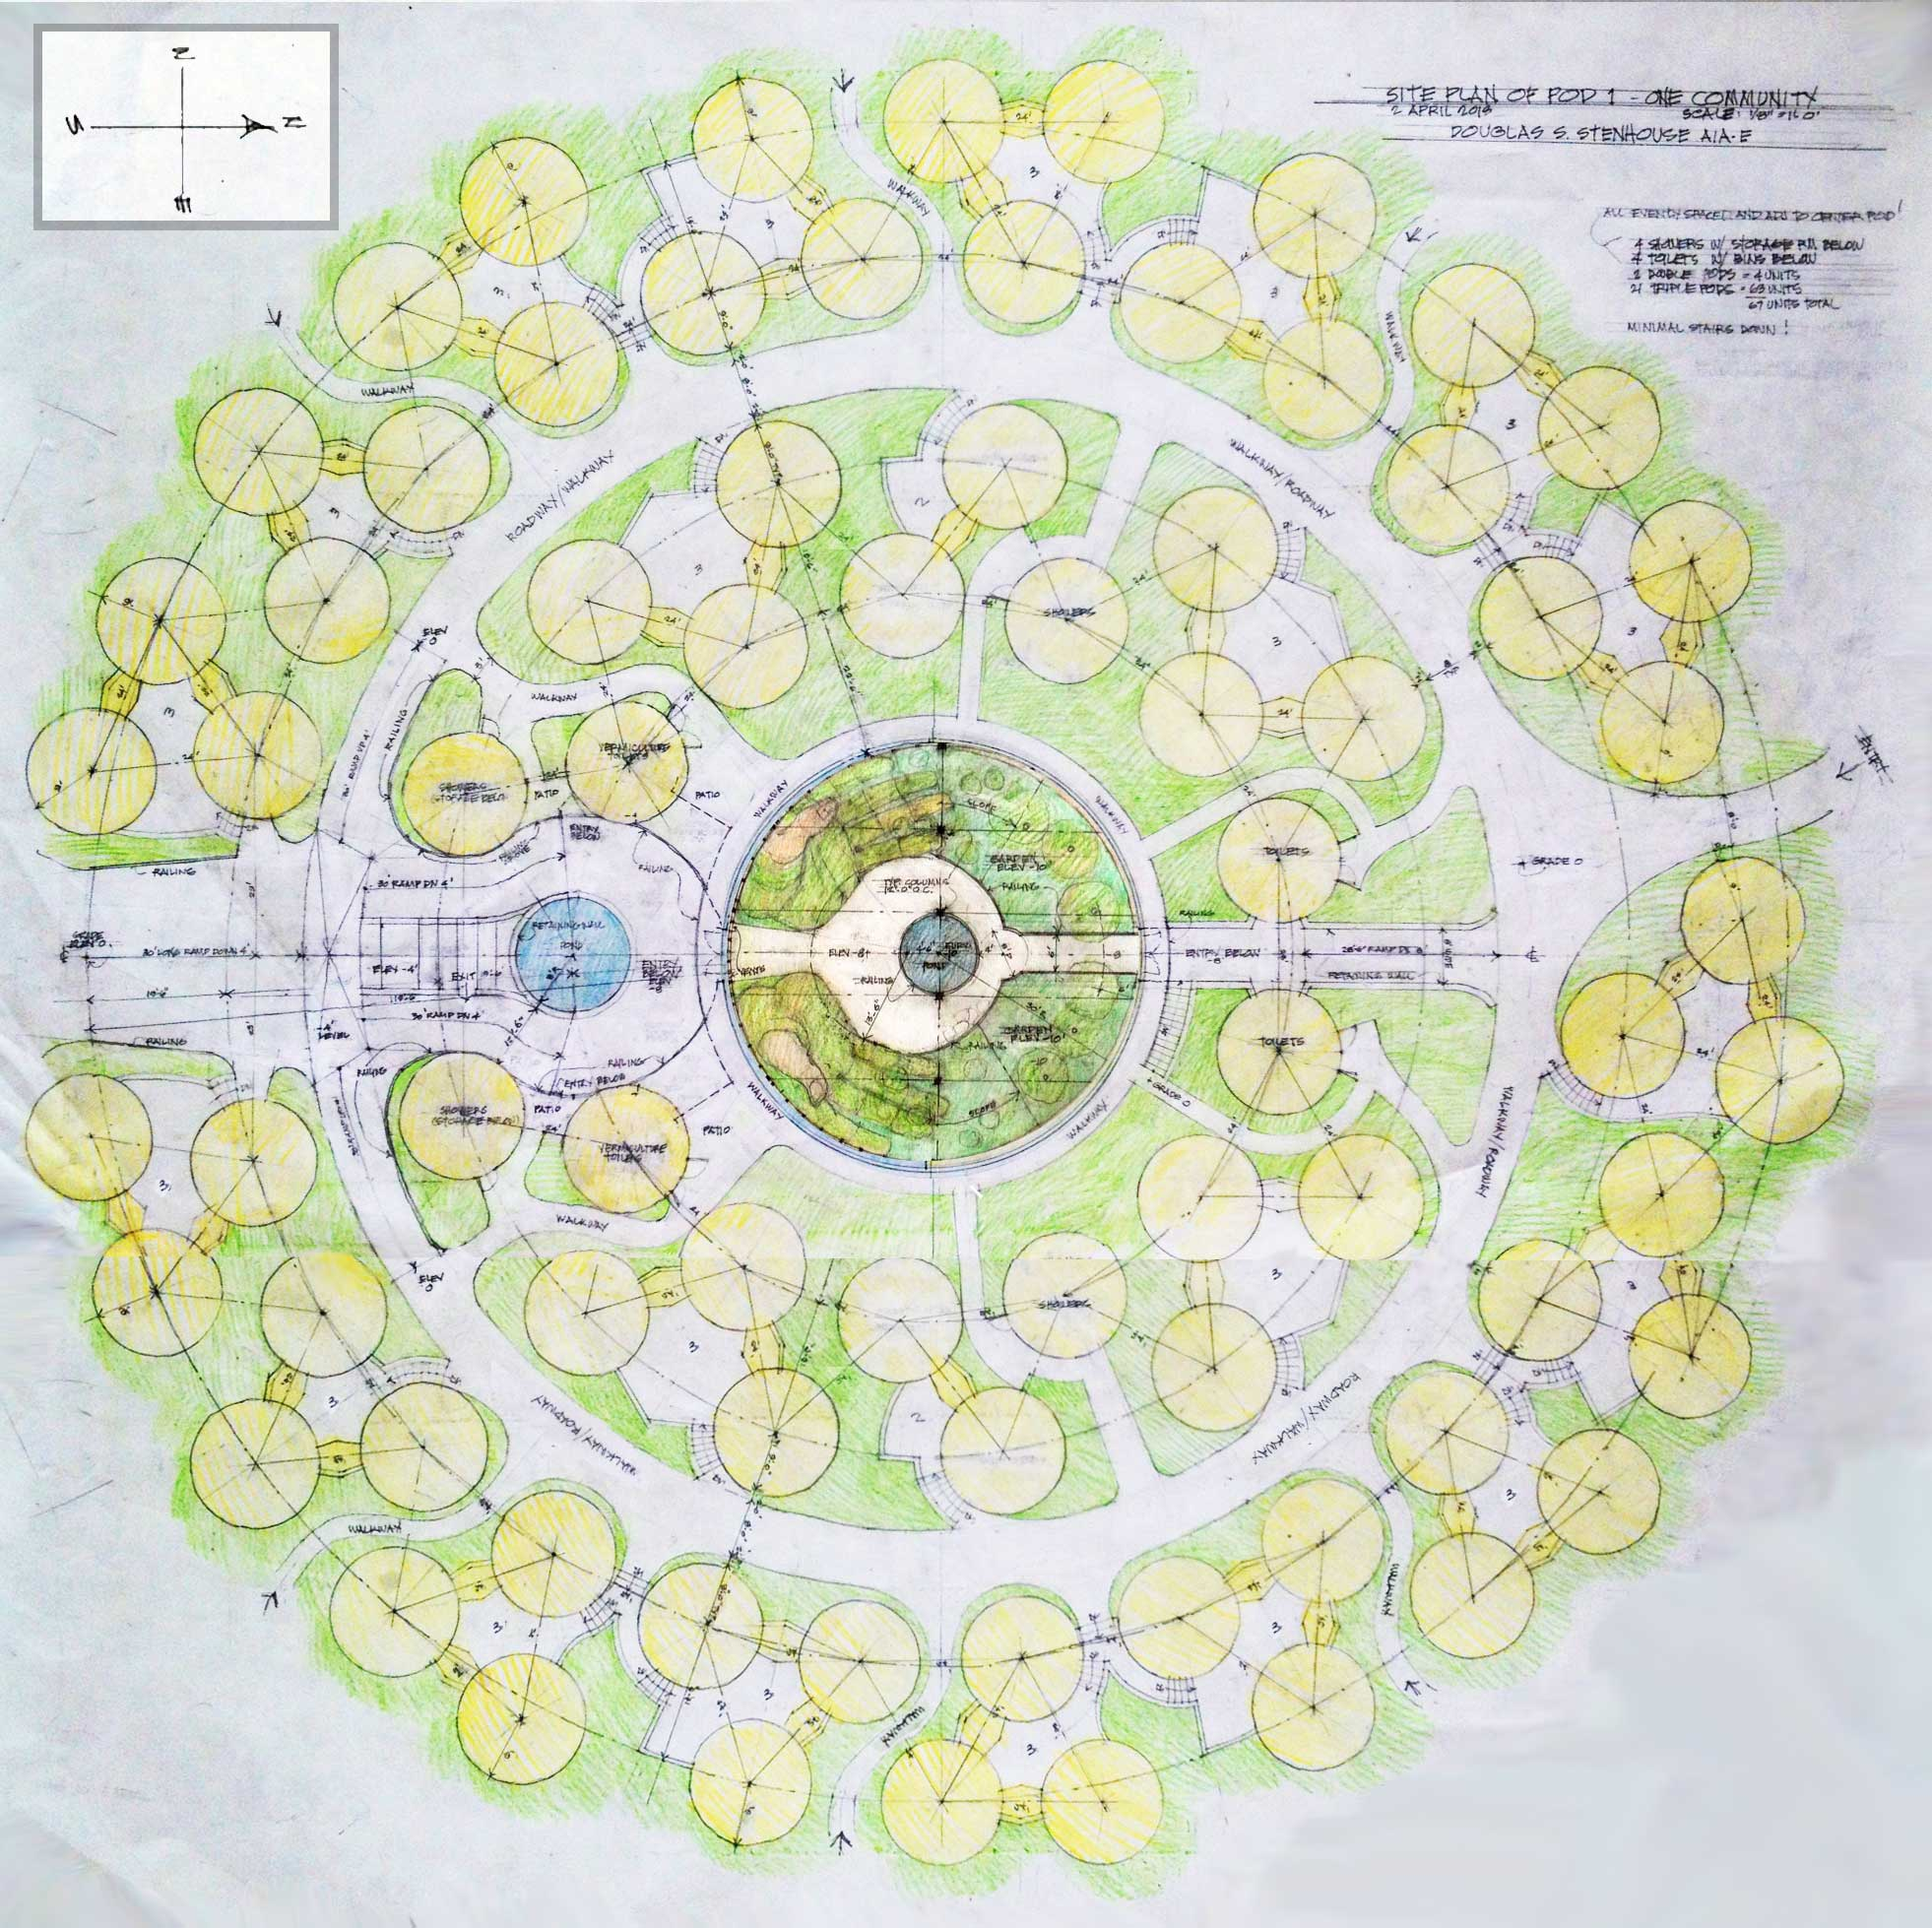 Regenerative community blueprint local earth regenerative community blueprint malvernweather Gallery